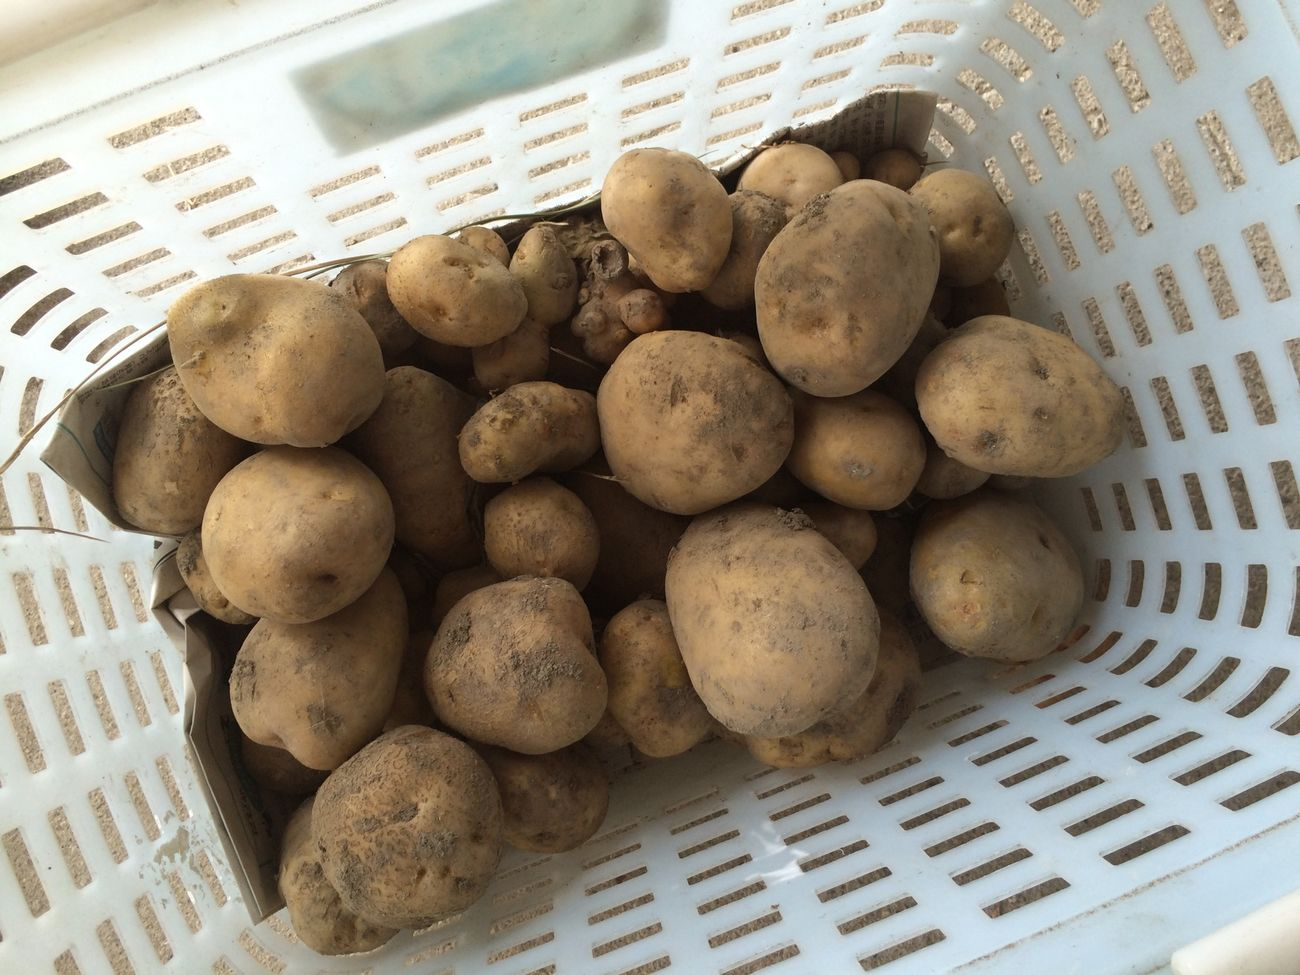 ジャガイモ(男爵) Vegetables Potato Harvest Big Potato